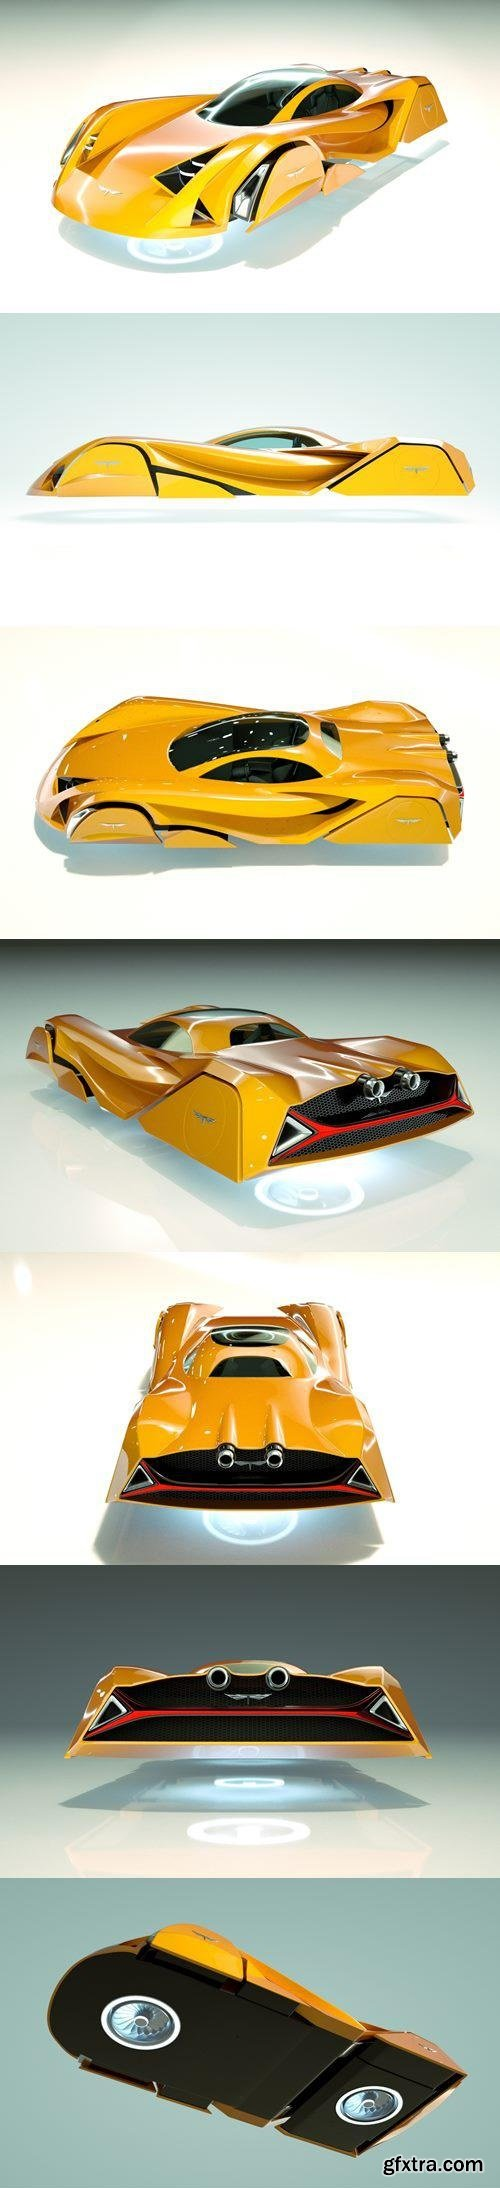 T-Hover Car 07 – Cheap & Cool series - 3D Model